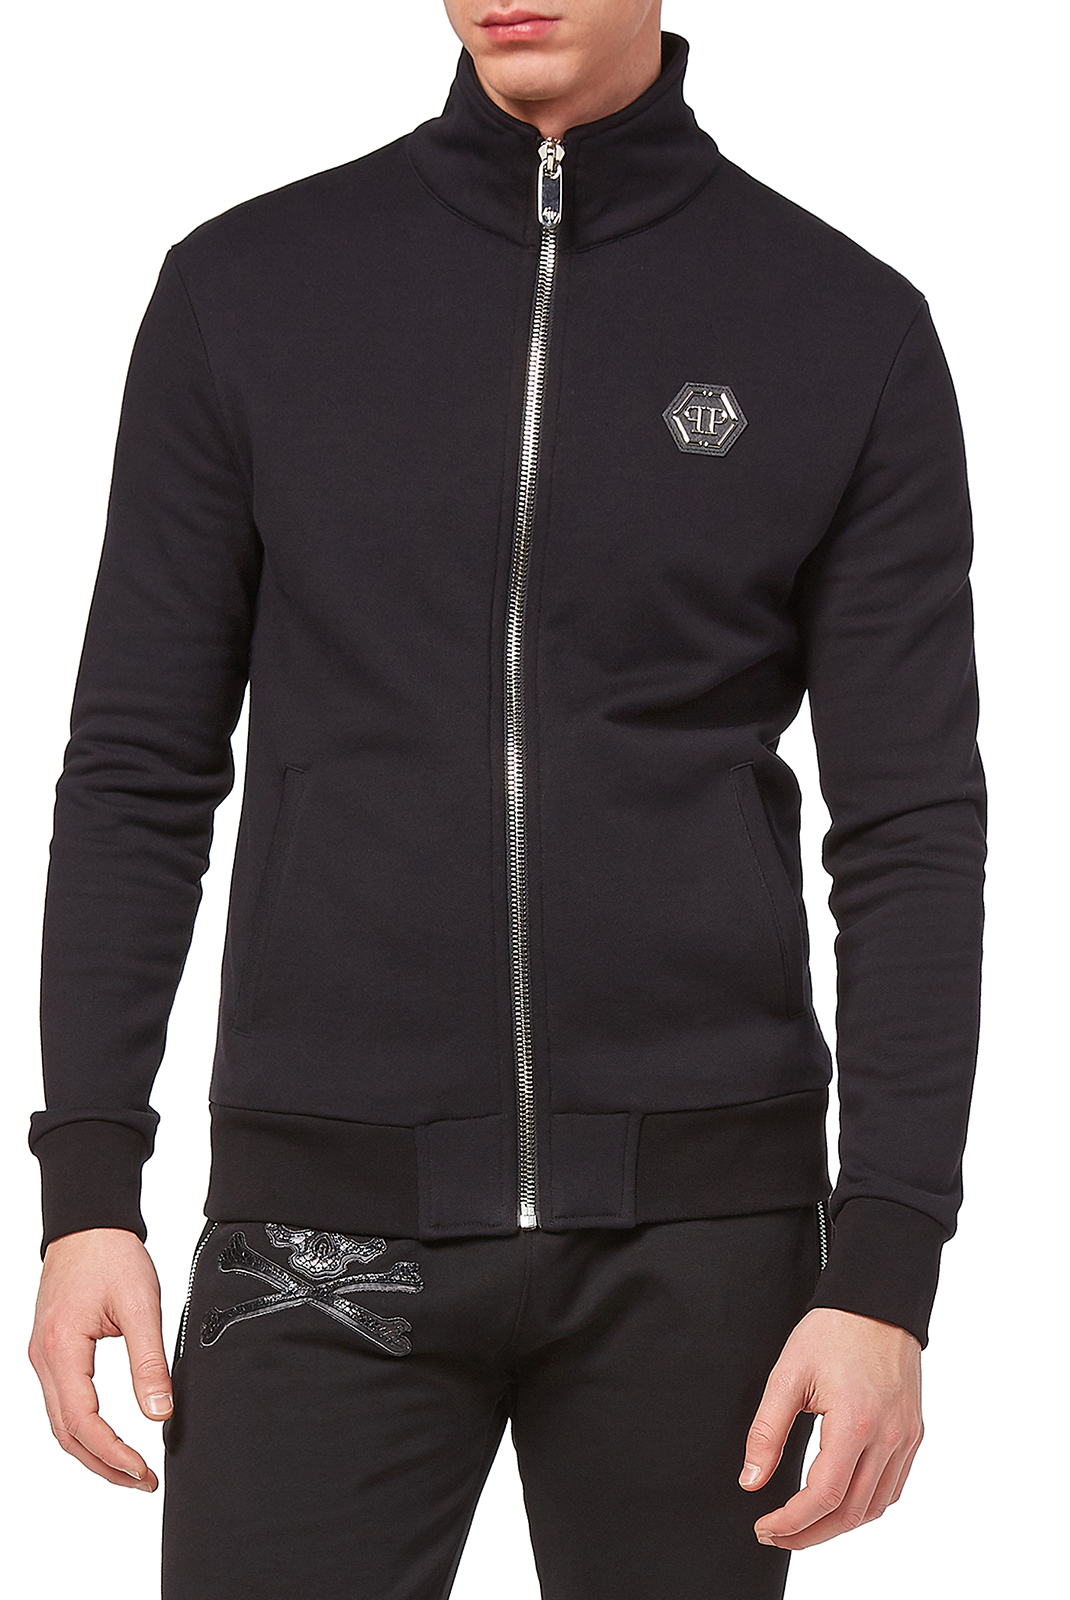 Vestes zippées  Philipp plein MJB0468 SEVENTY EIGHT 02 BLACK